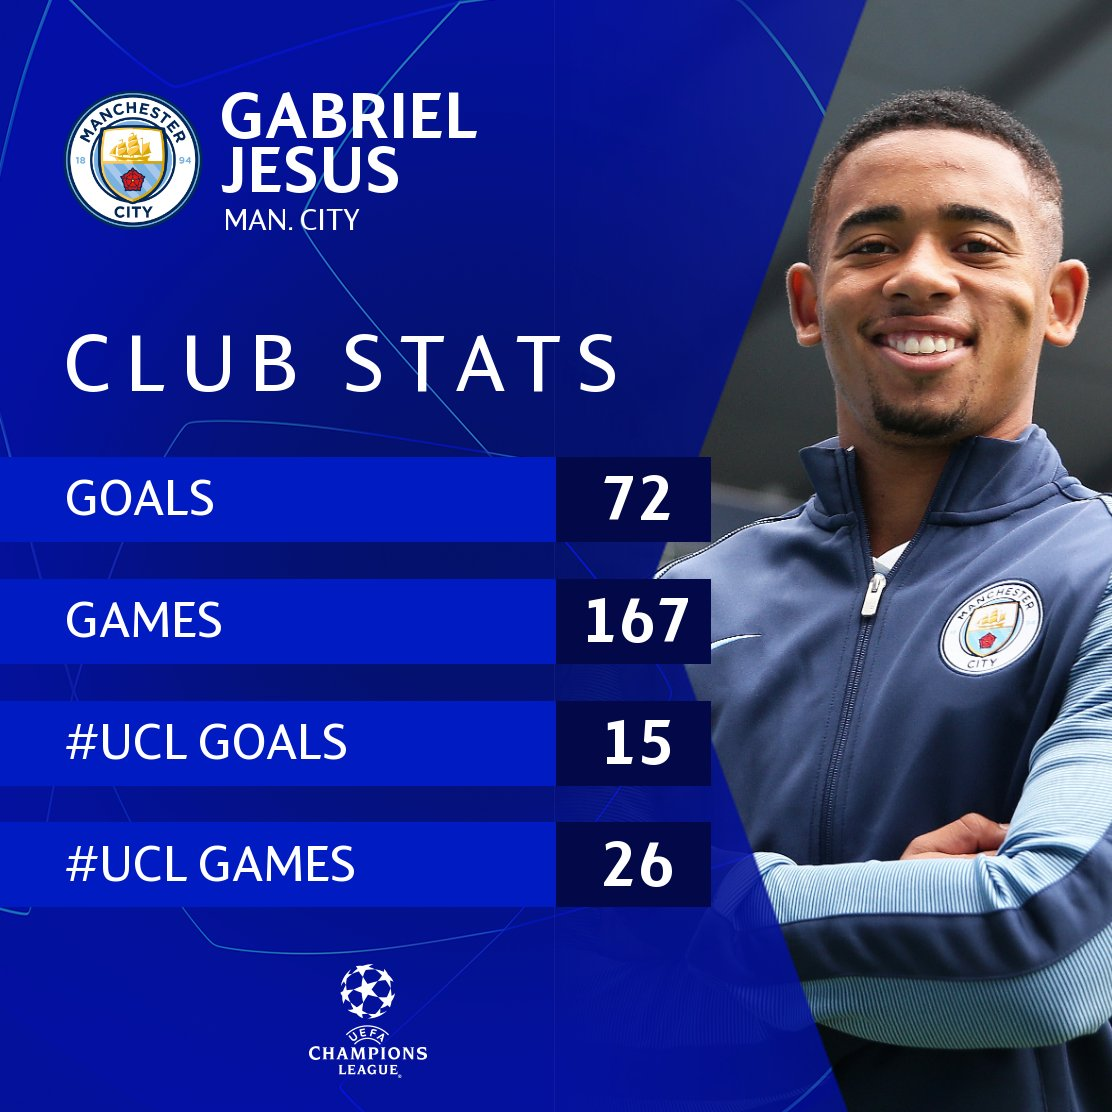 🇧🇷 Gabriel Jesus at Manchester City = 🔥 #UCL twitter.com/ChampionsLeagu…